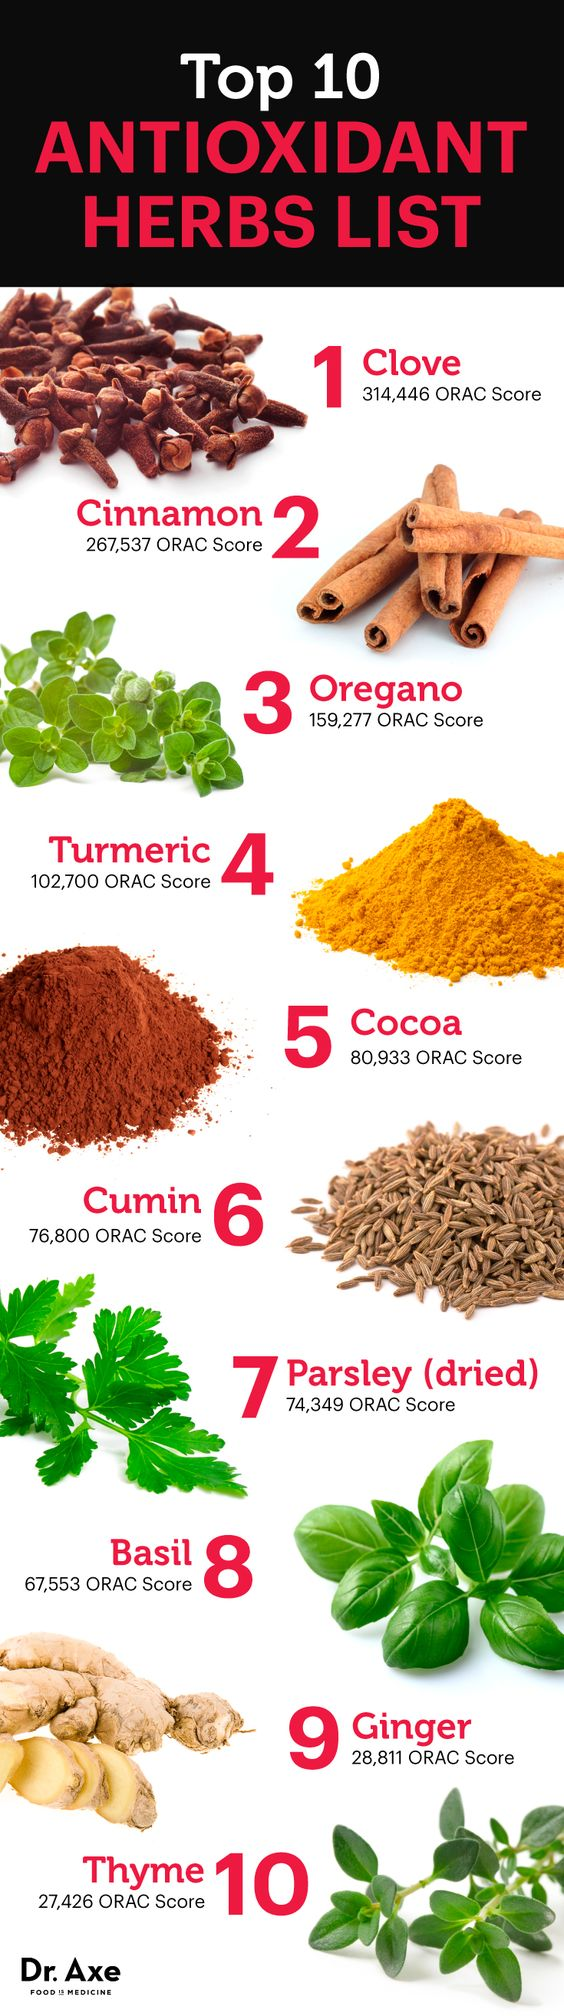 Top 10 High Antioxidant Foods - DrAxe.com: